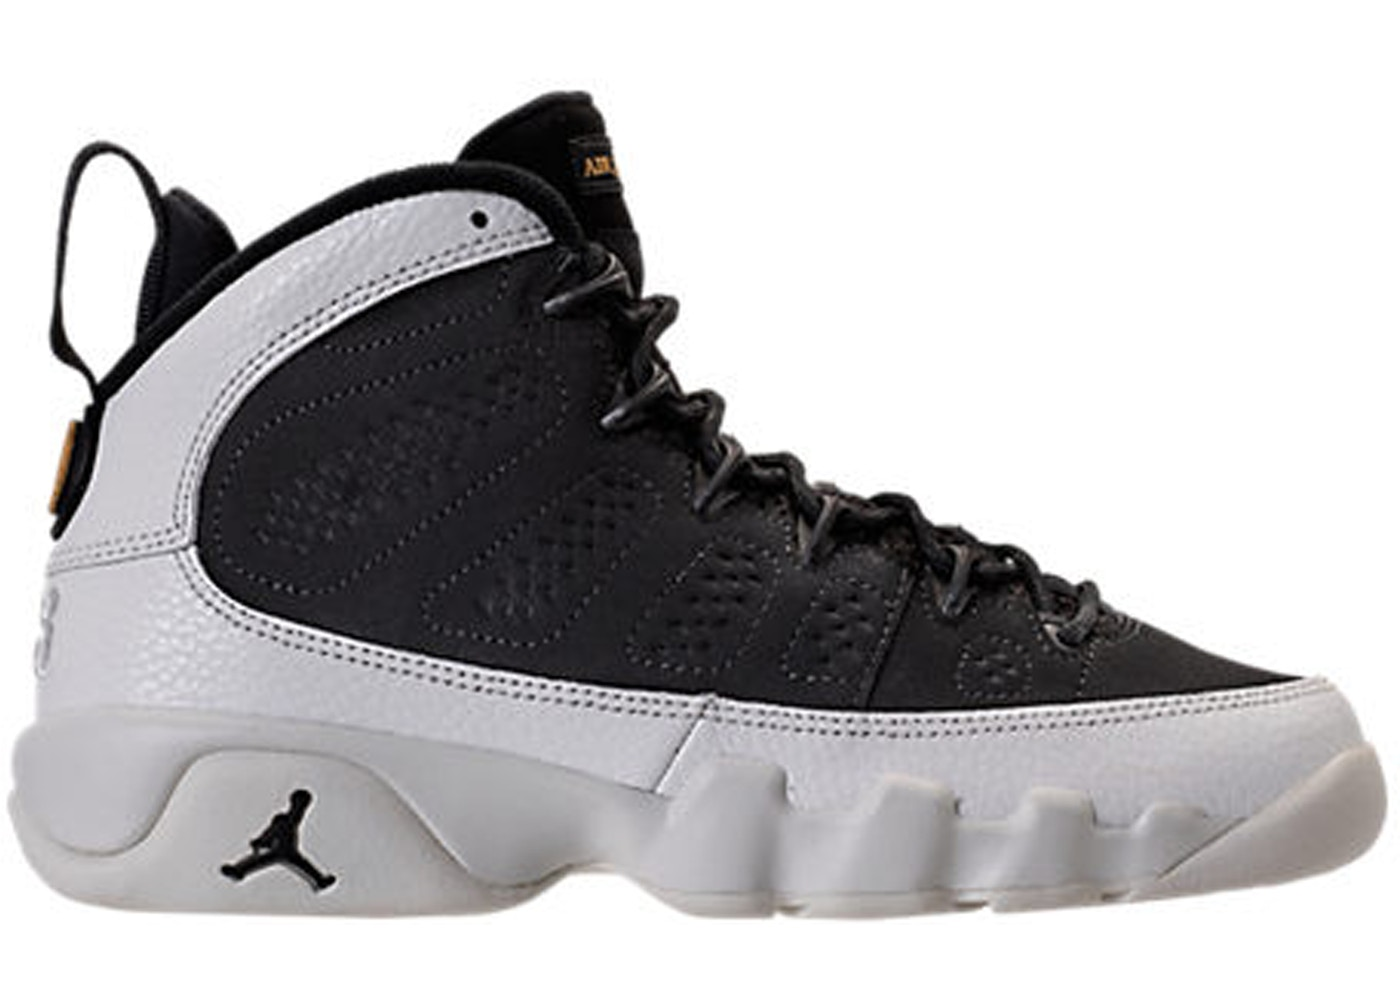 bff2fcfdec3 Jordan 9 Retro City of Flight (GS) - 302359-021